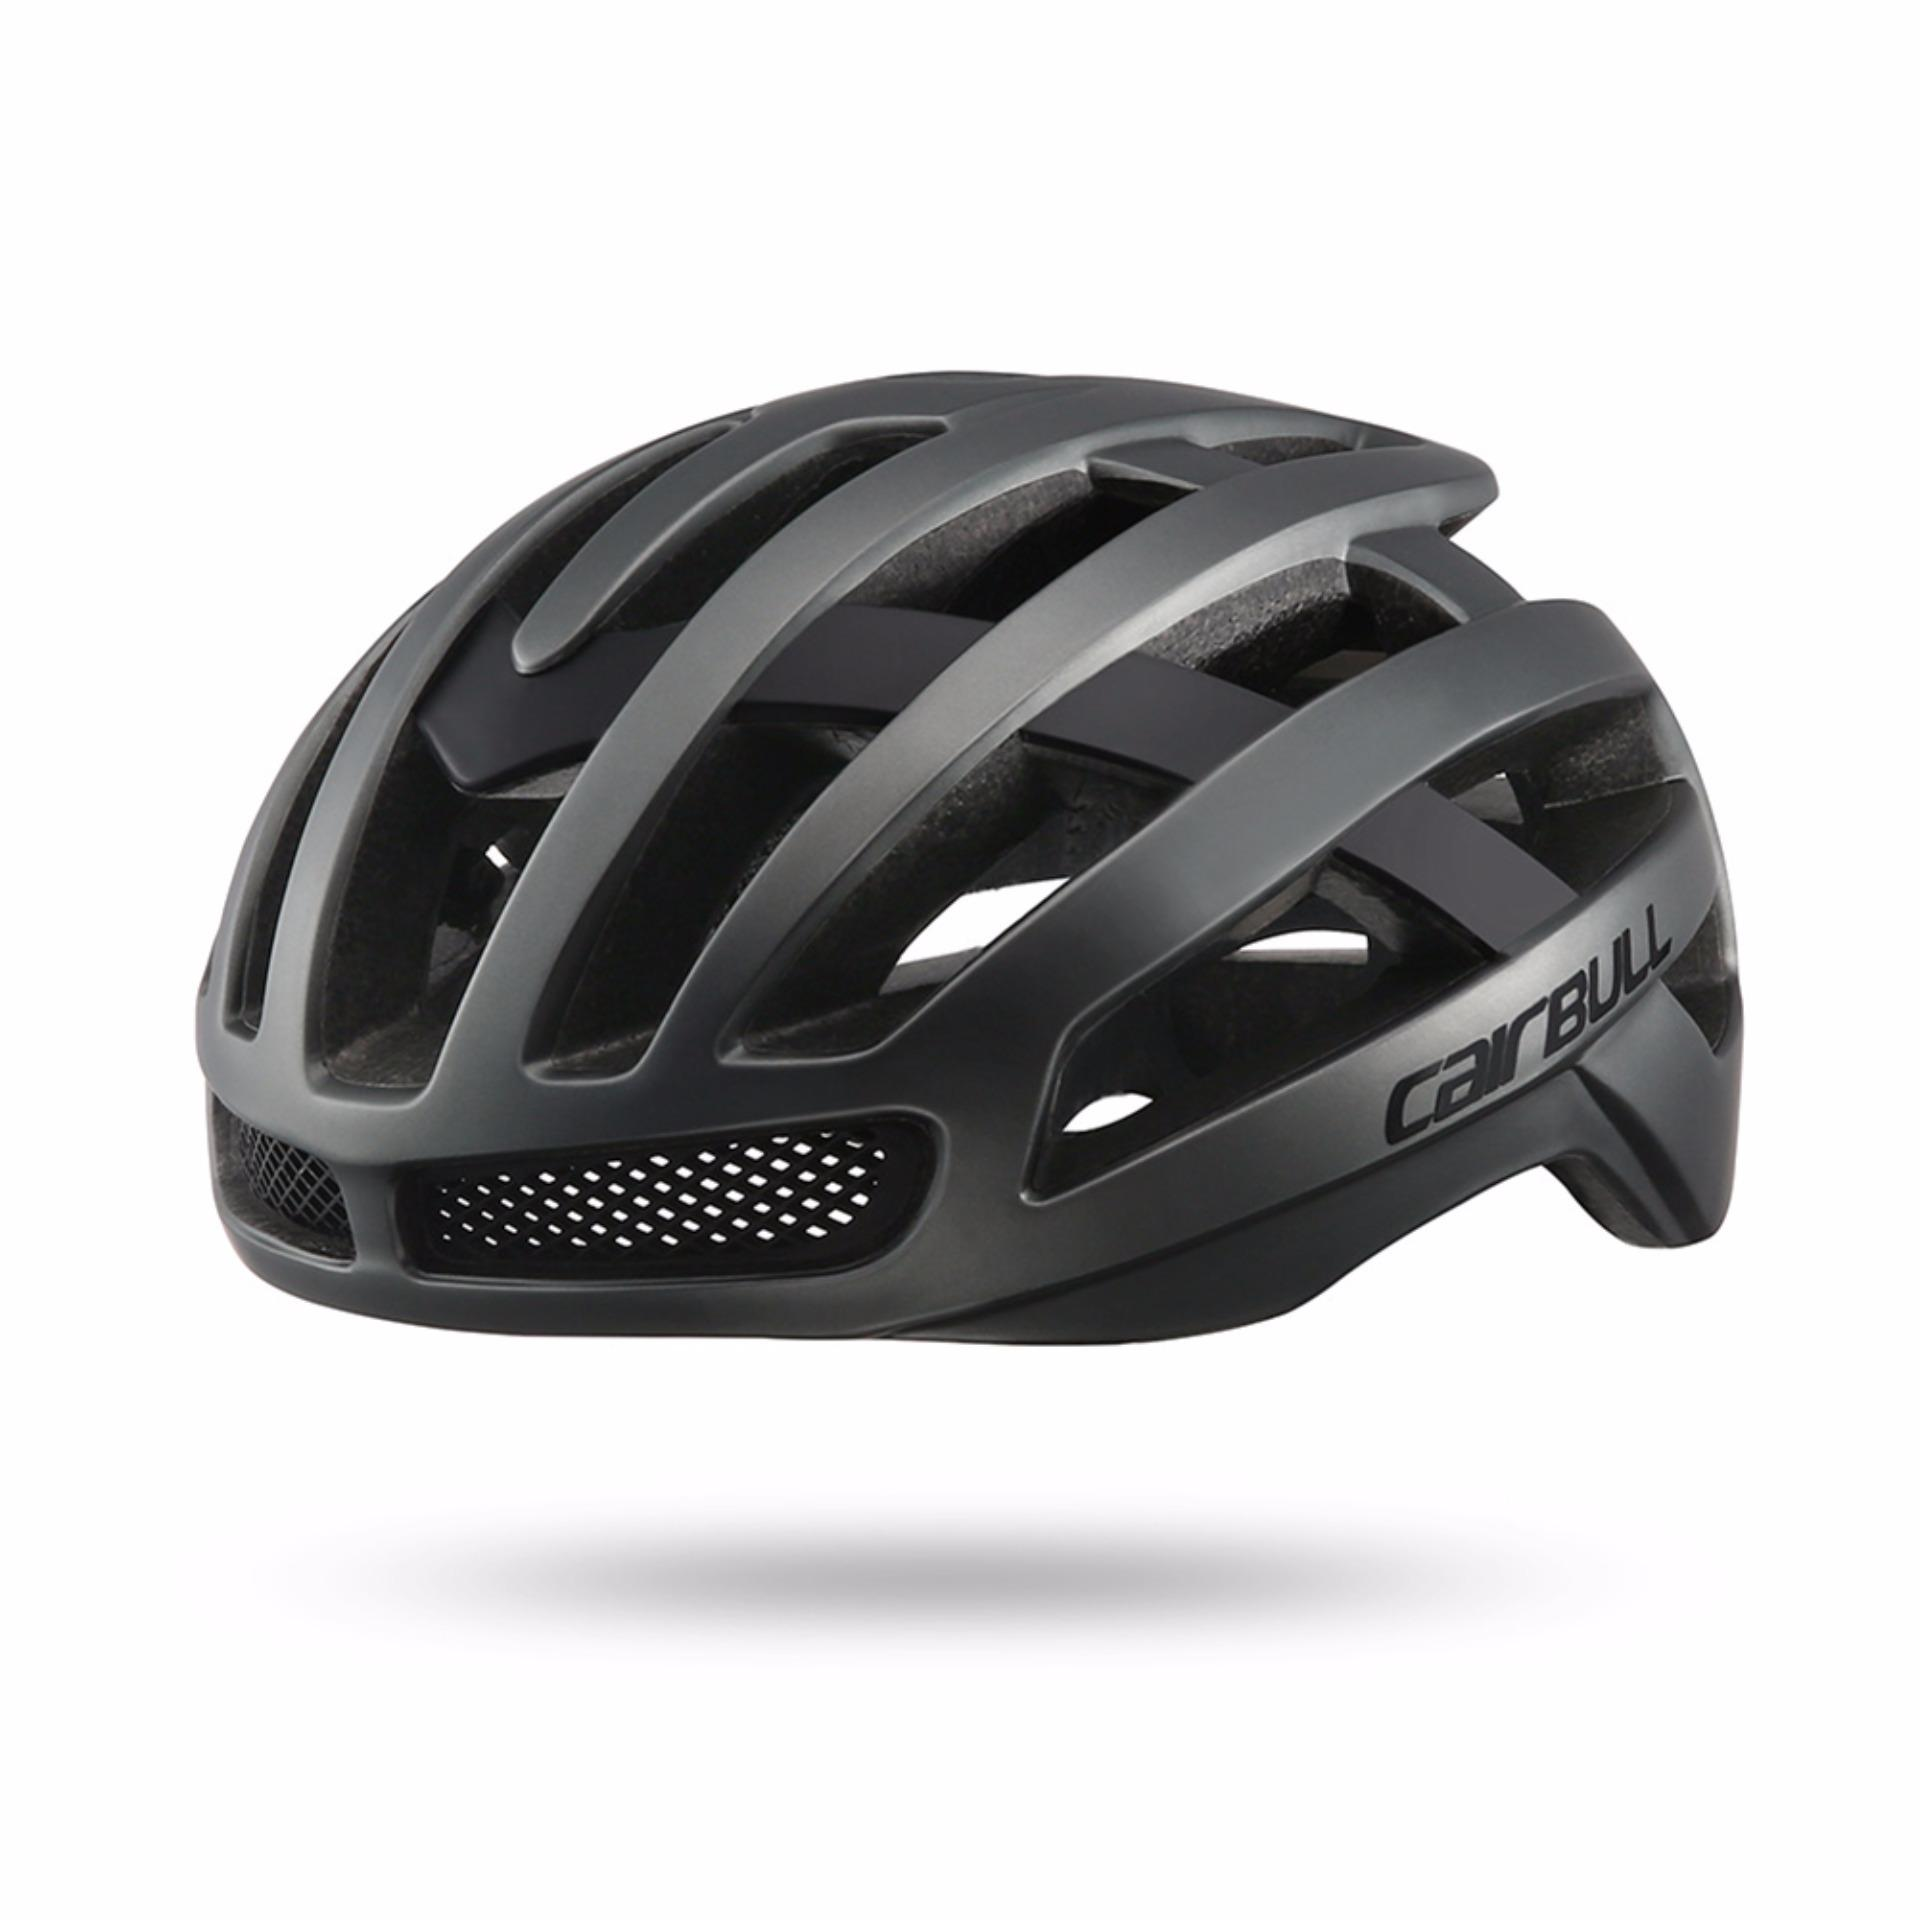 75f39e675e4 Outdoor Riding Super Lightweight Helmet Road Cycling Comfort Areo Moutain  Riding Safety Helmets Bicycle Breathable Helmet